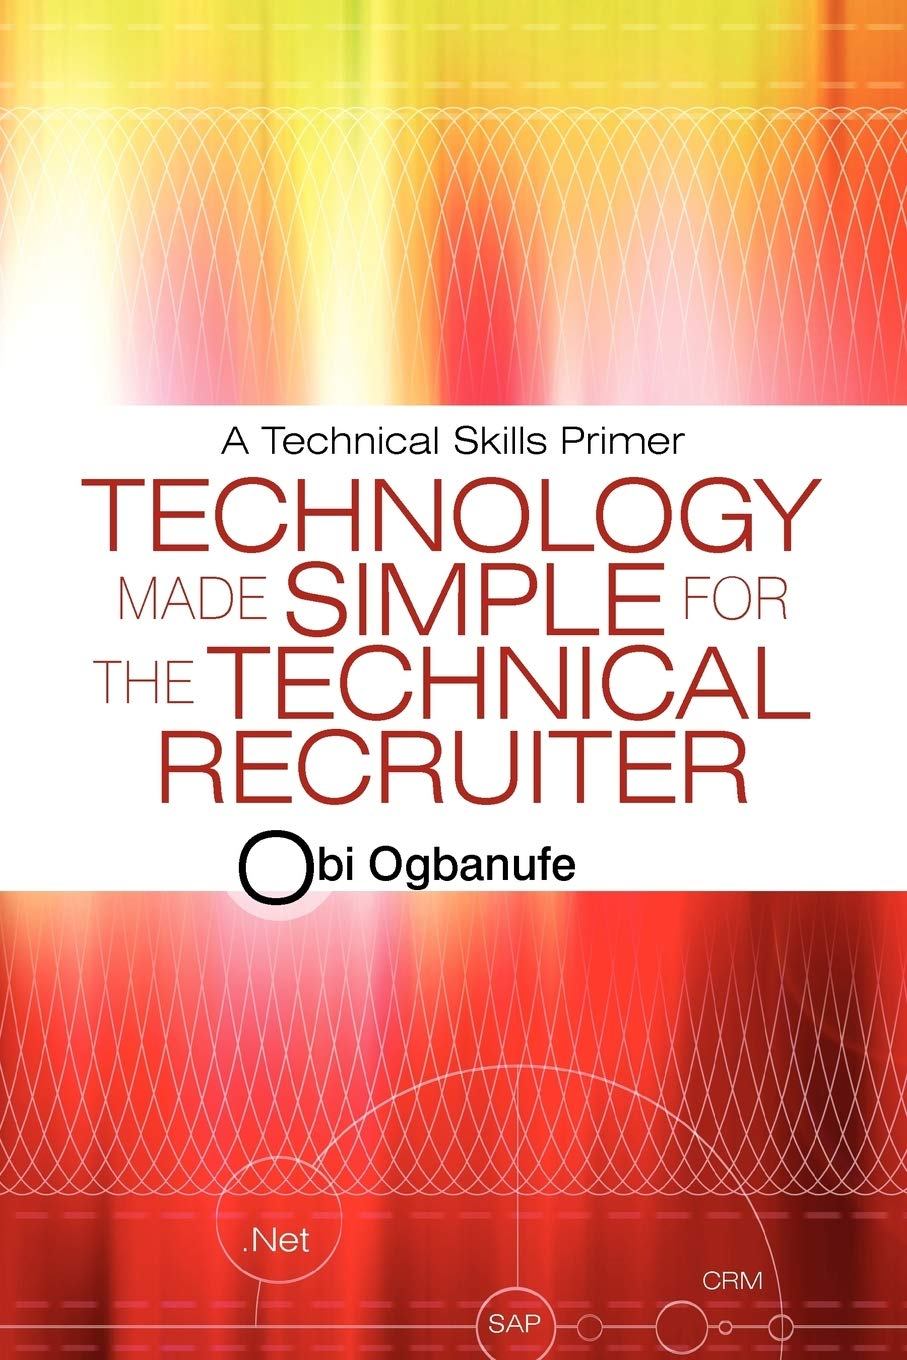 Image OfTechnology Made Simple For The Technical Recruiter: A Technical Skills Primer